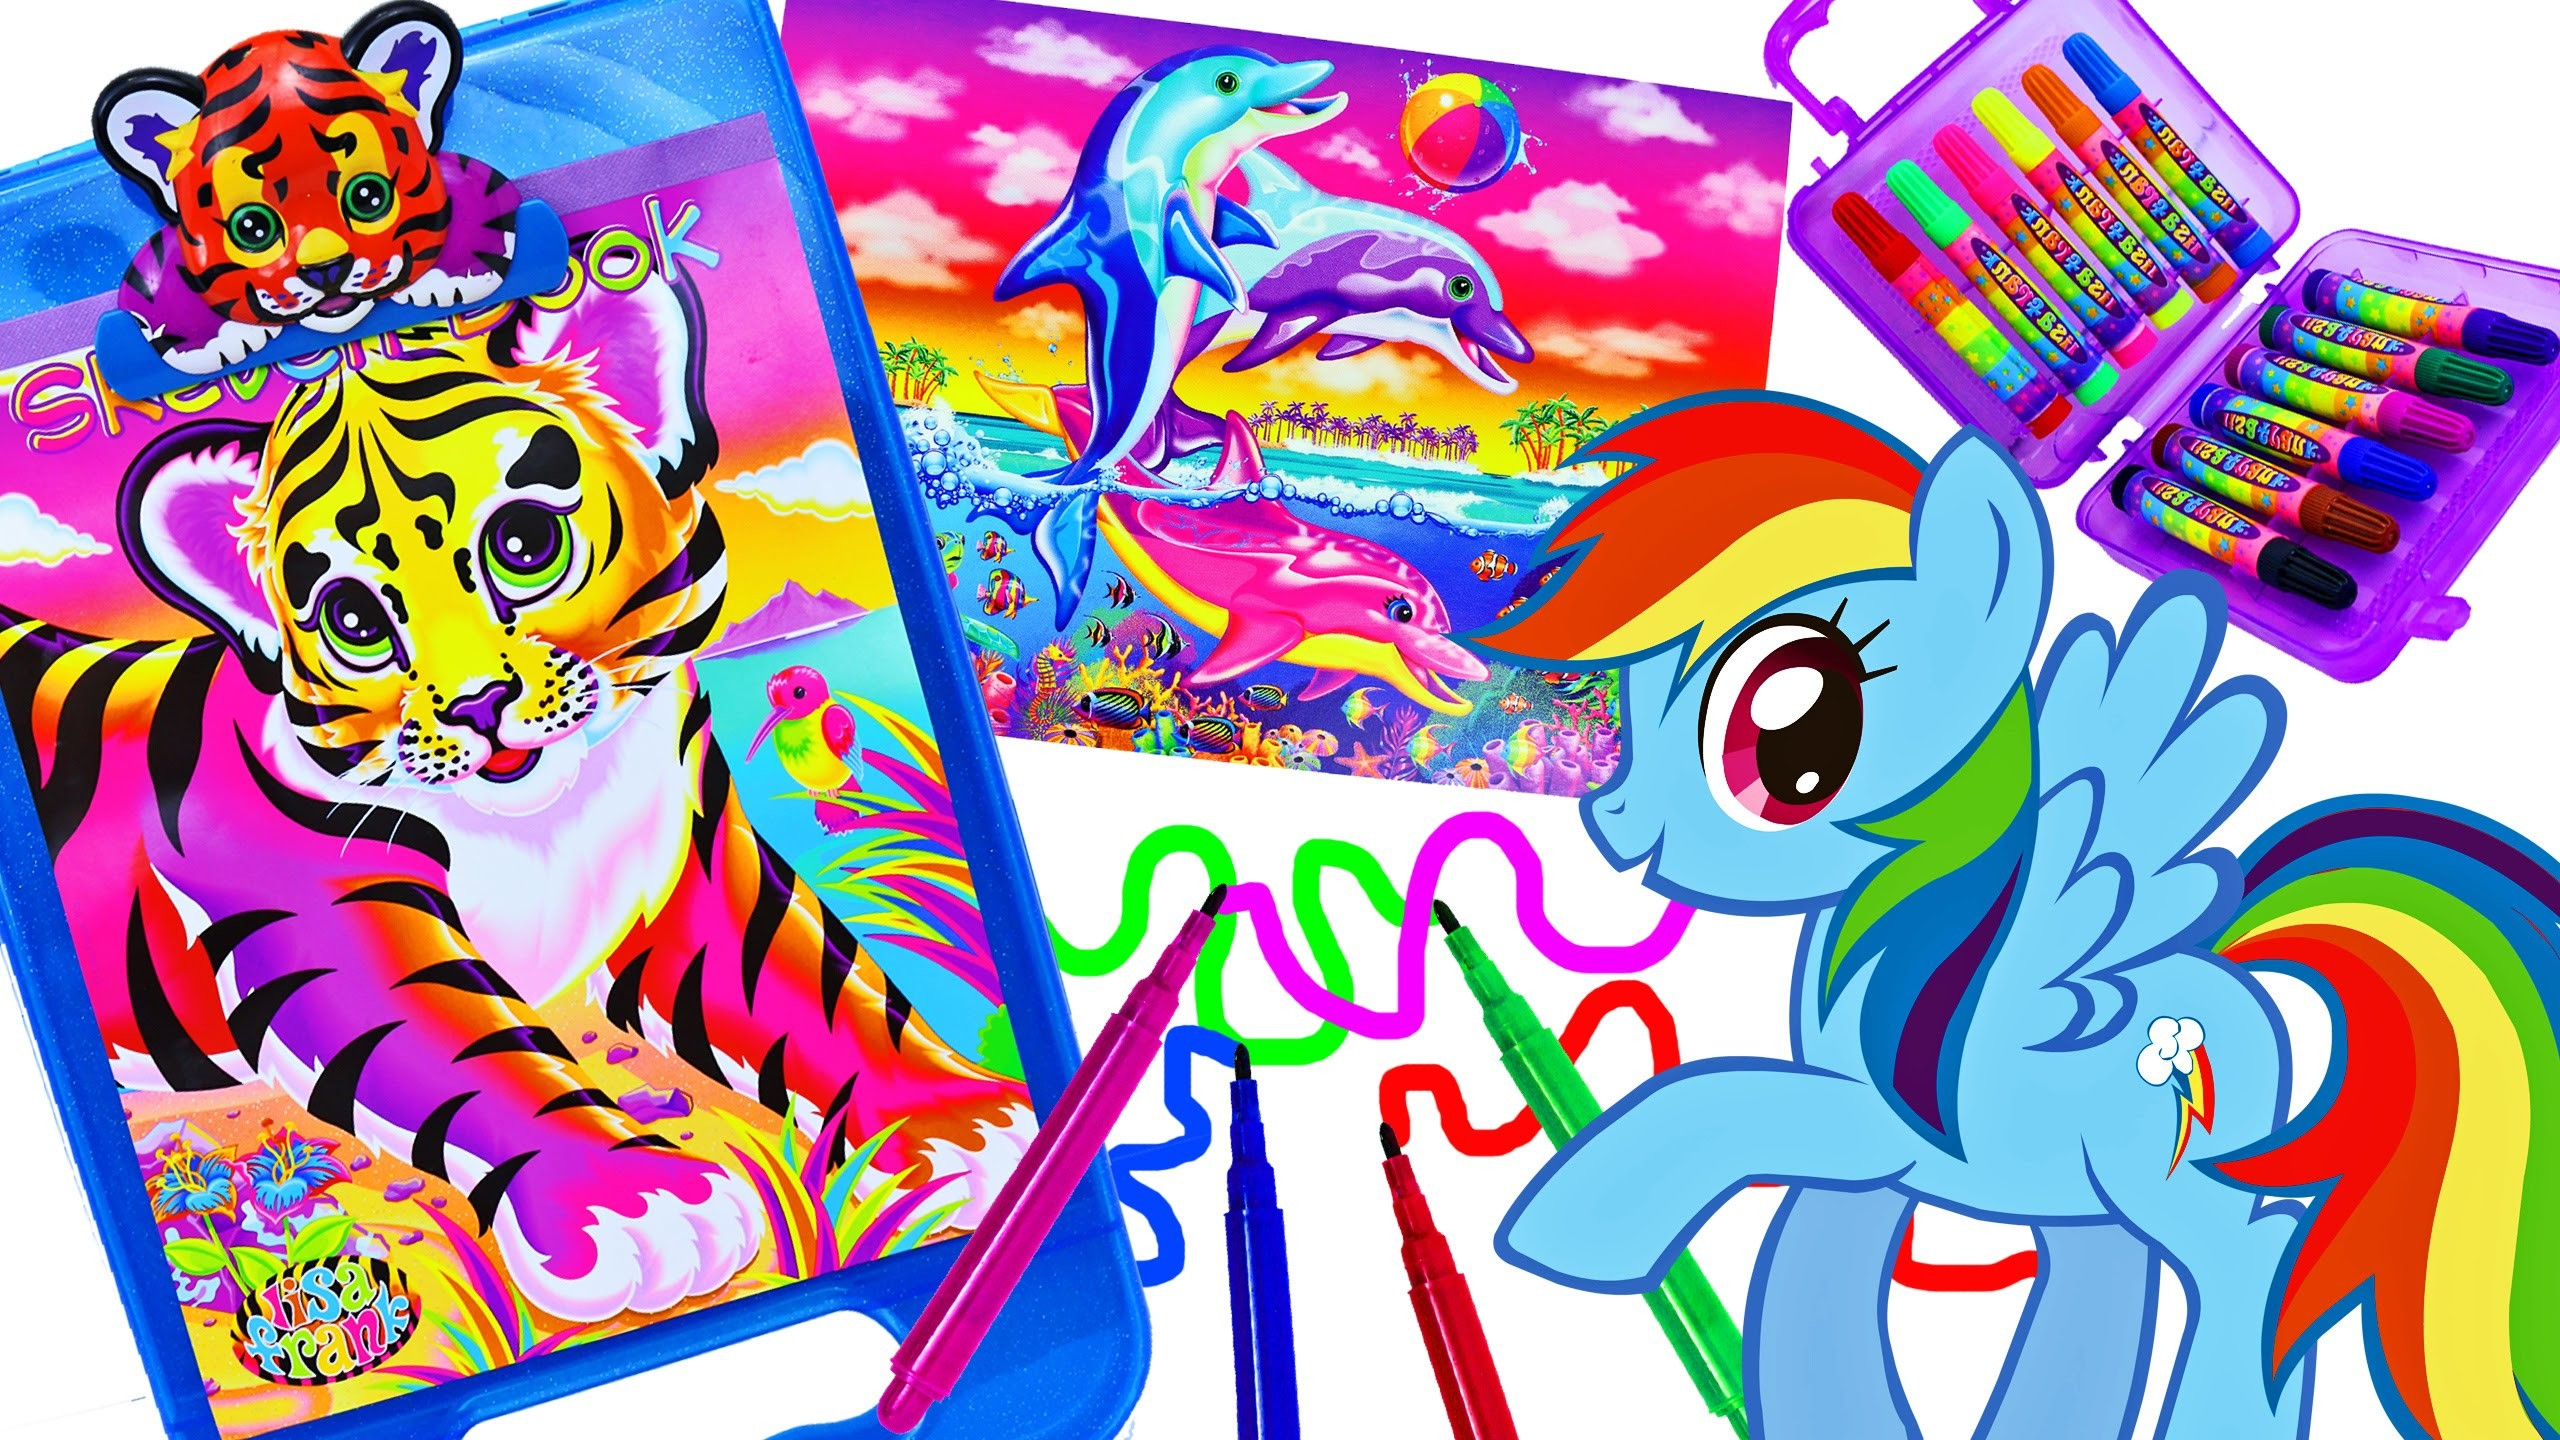 Lisa Frank Coloring Set Magic Pet Color Changing Imagine Ink My Little Pony  MLP Kids Coloring Books – YouTube